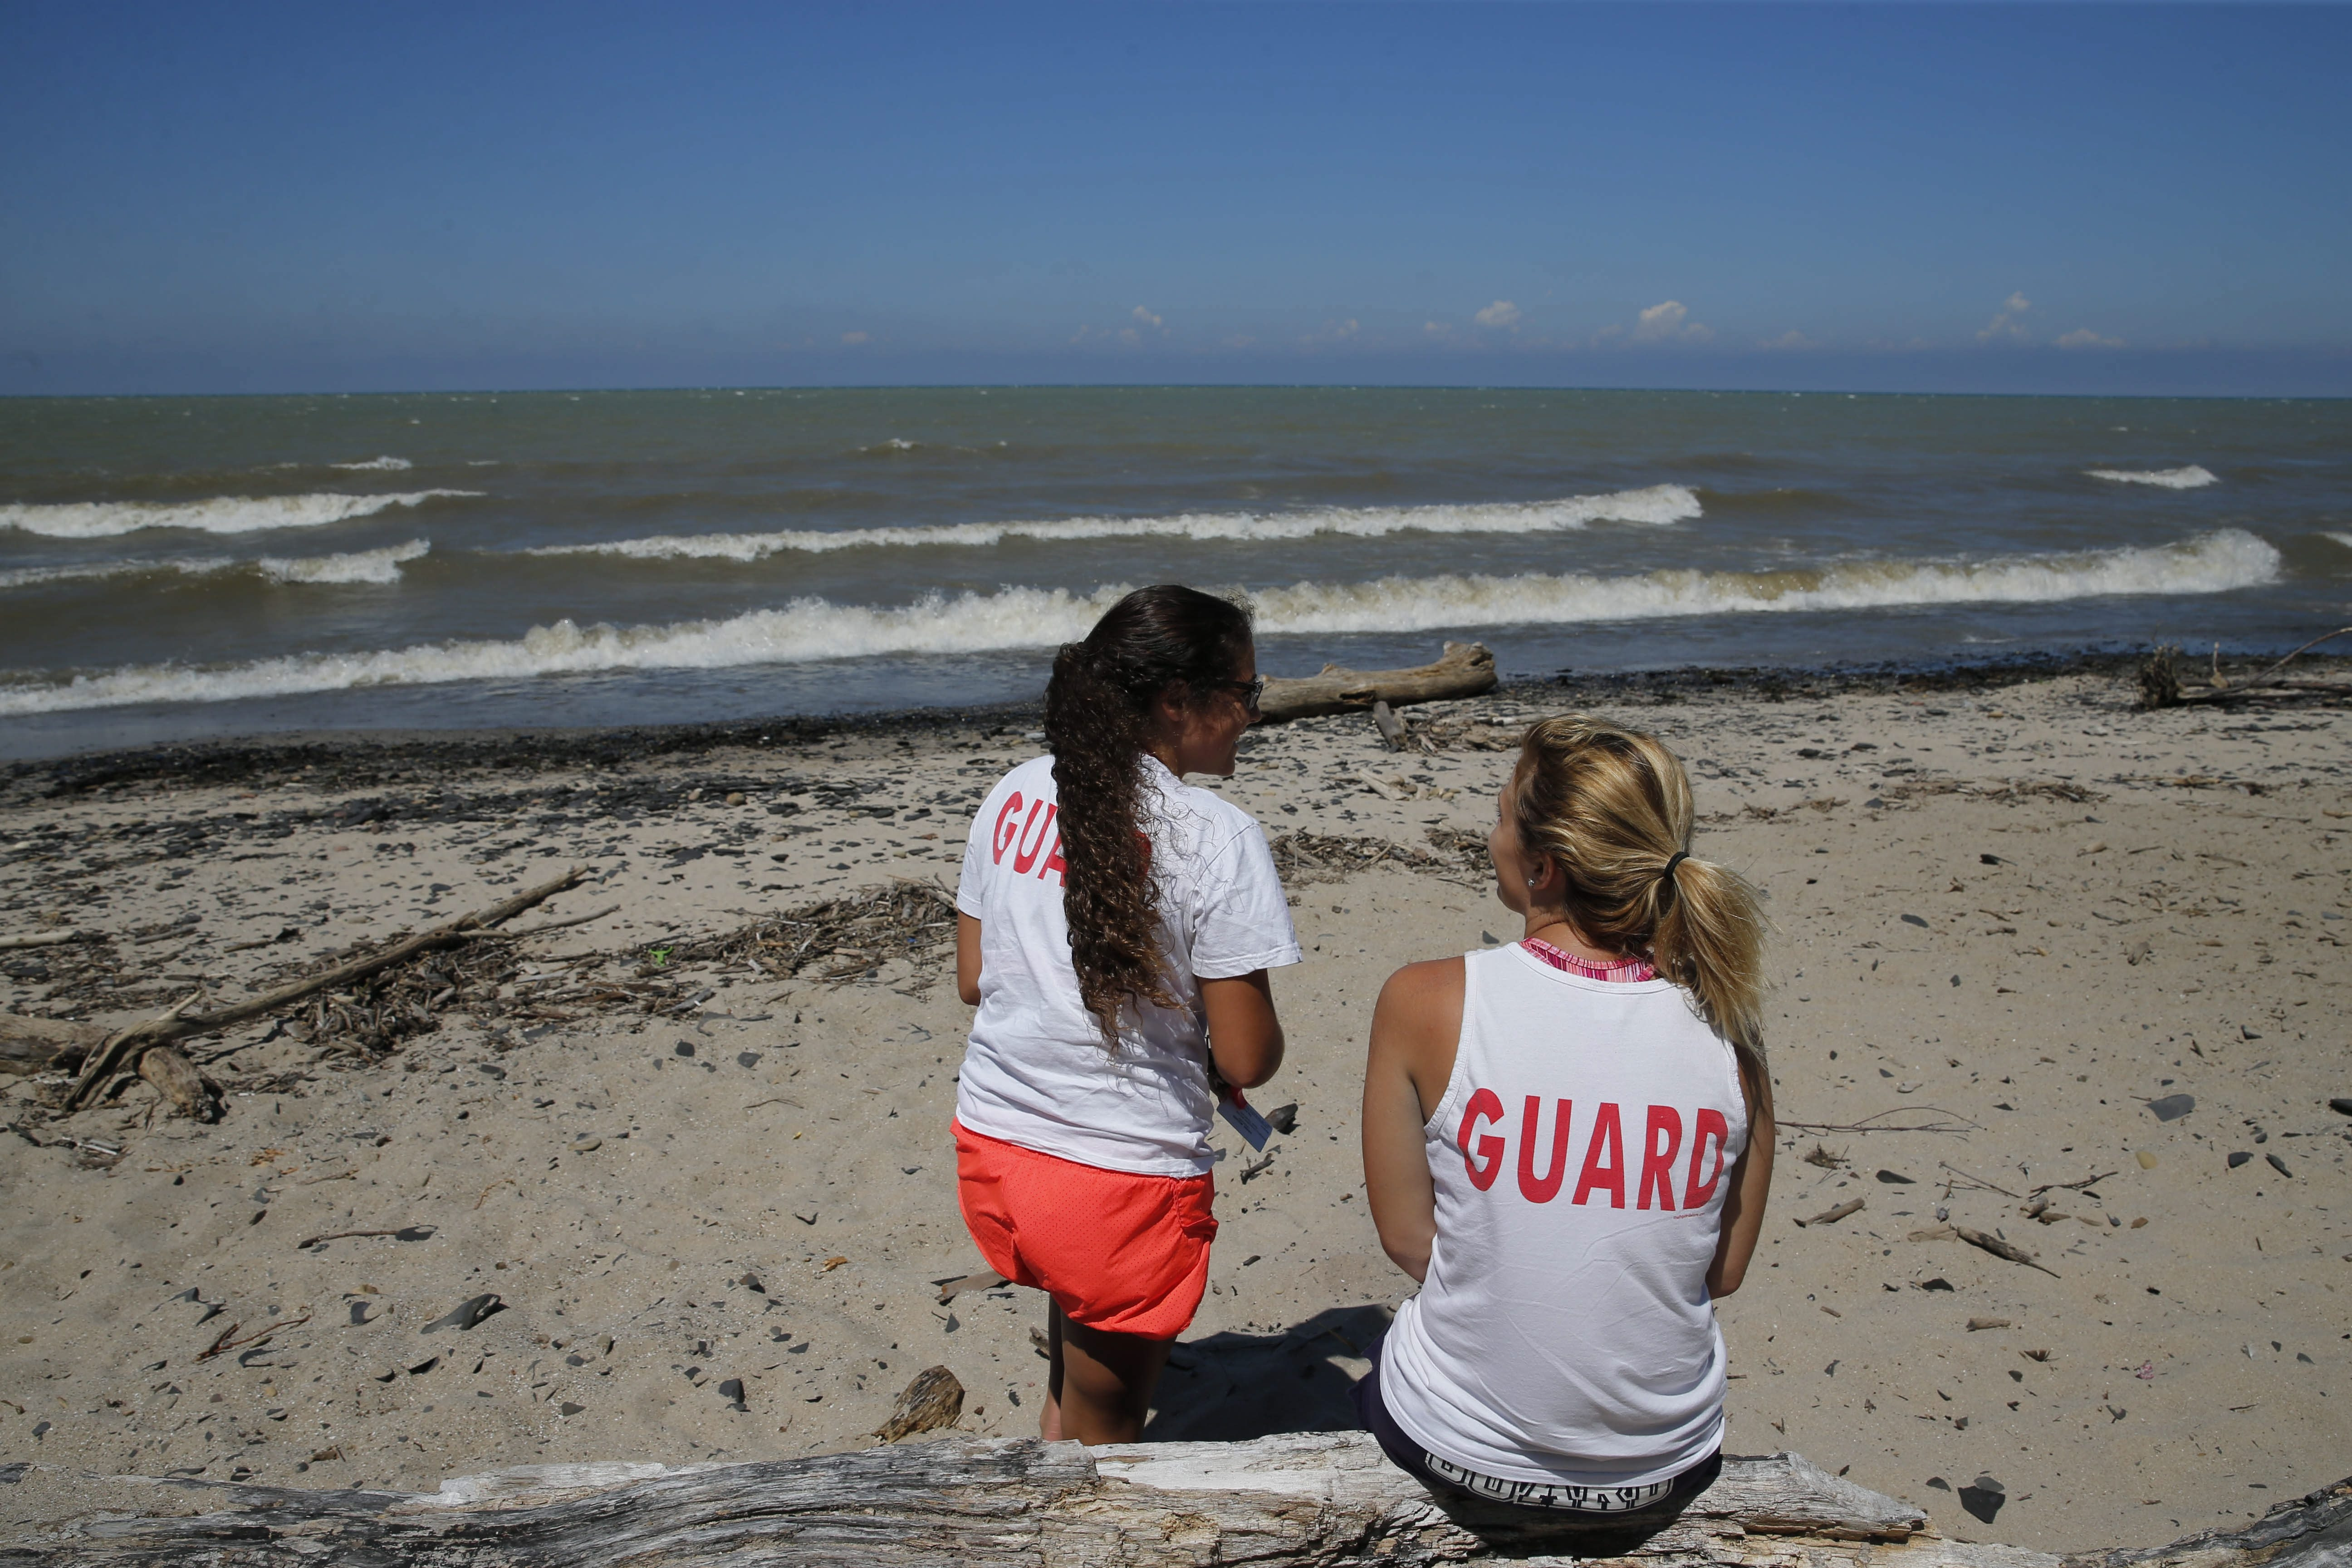 Lifeguards sit on the beach at Wendt Beach Park where Mary E. Creighton drowned last night while trying to rescue her 11-year-old daughter and another child from the rough waters of Lake Erie, Friday, July 31, 2015.  (Derek Gee/Buffalo News)